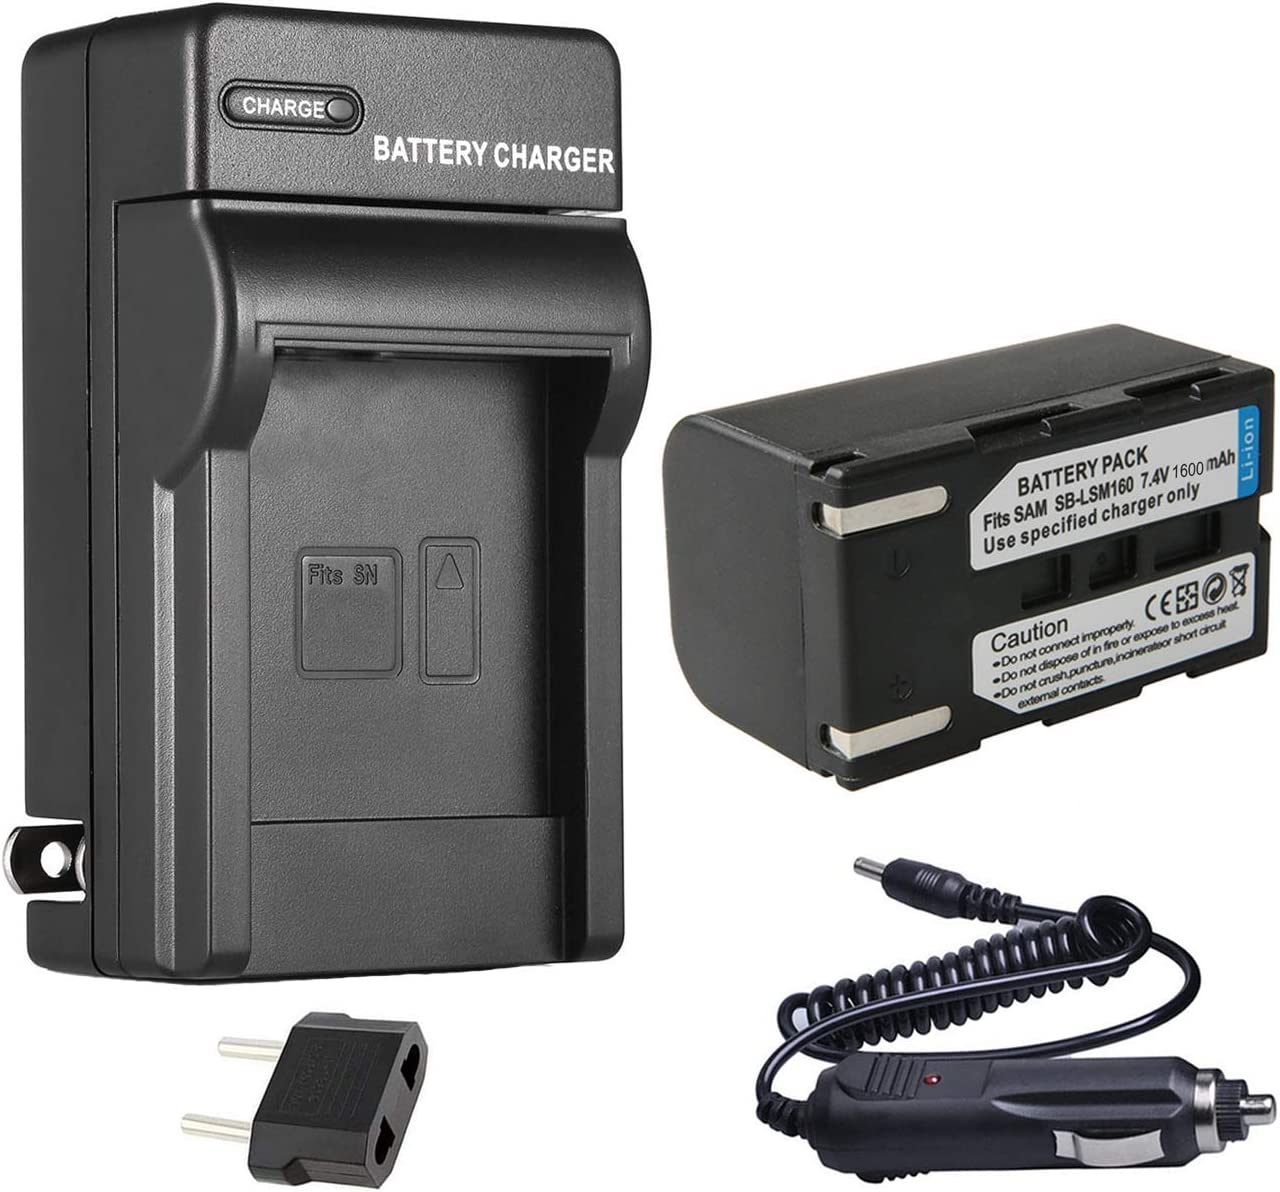 VP-D371i Battery Pack VP-D371W USB Charger for Samsung VP-D371 VP-D371Wi Digital Camcorder